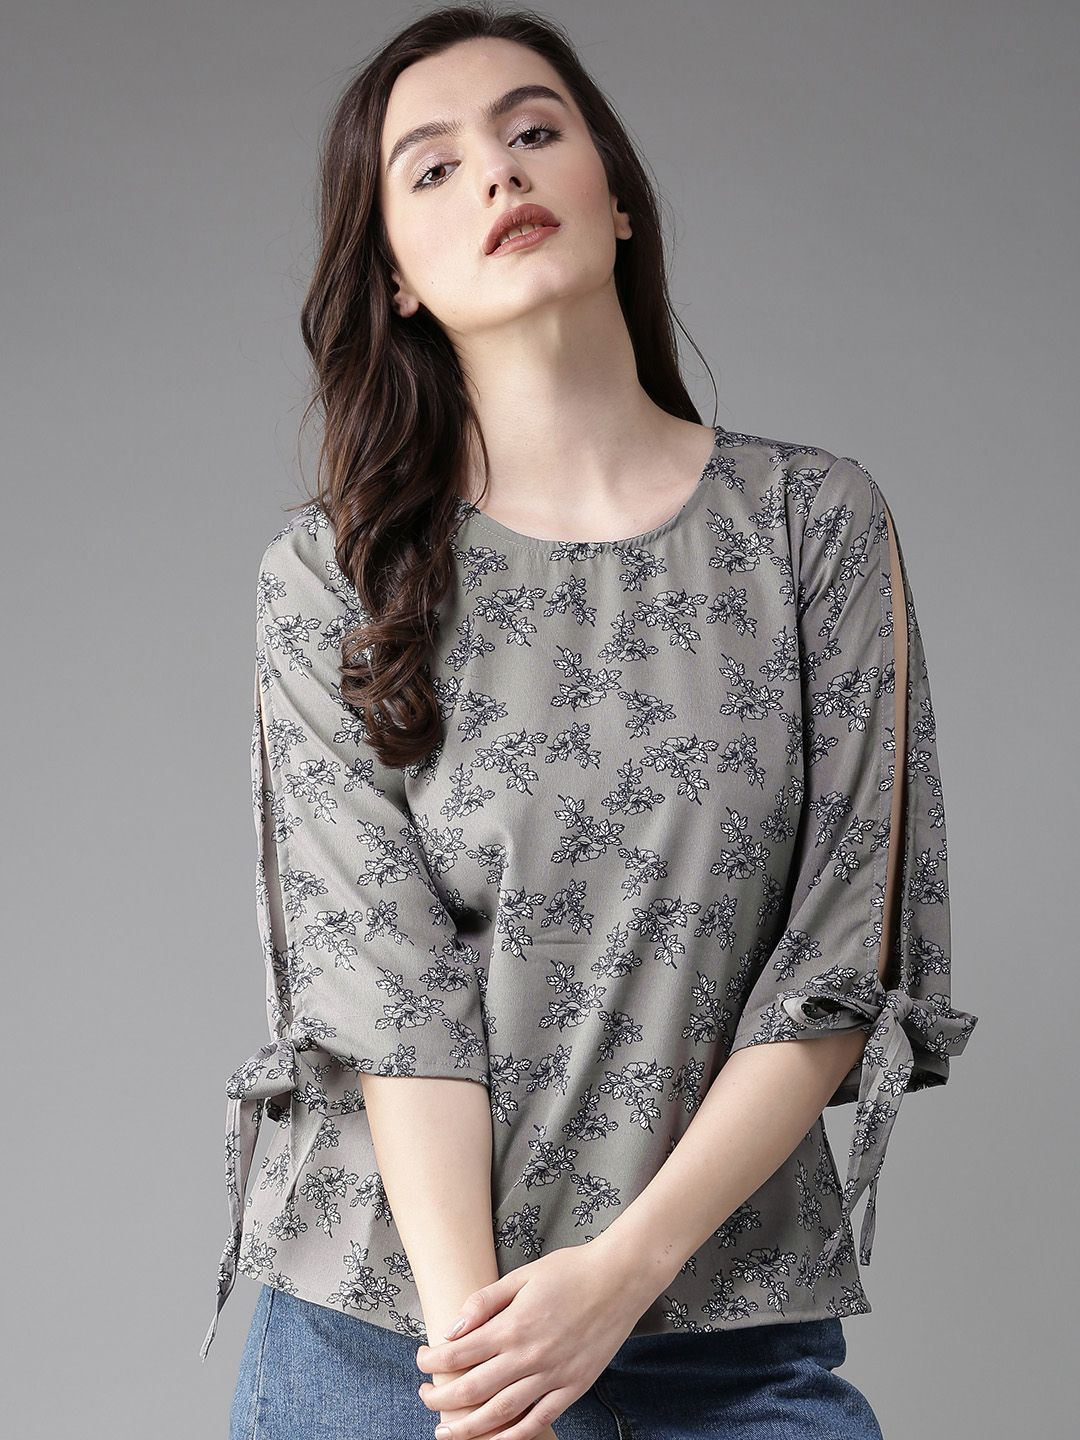 92380a39b45c Buy HERE&NOW Women Grey Floral Print Top - Tops for Women 2288919 | Myntra.  Find this Pin and more on Women's Fashion ...